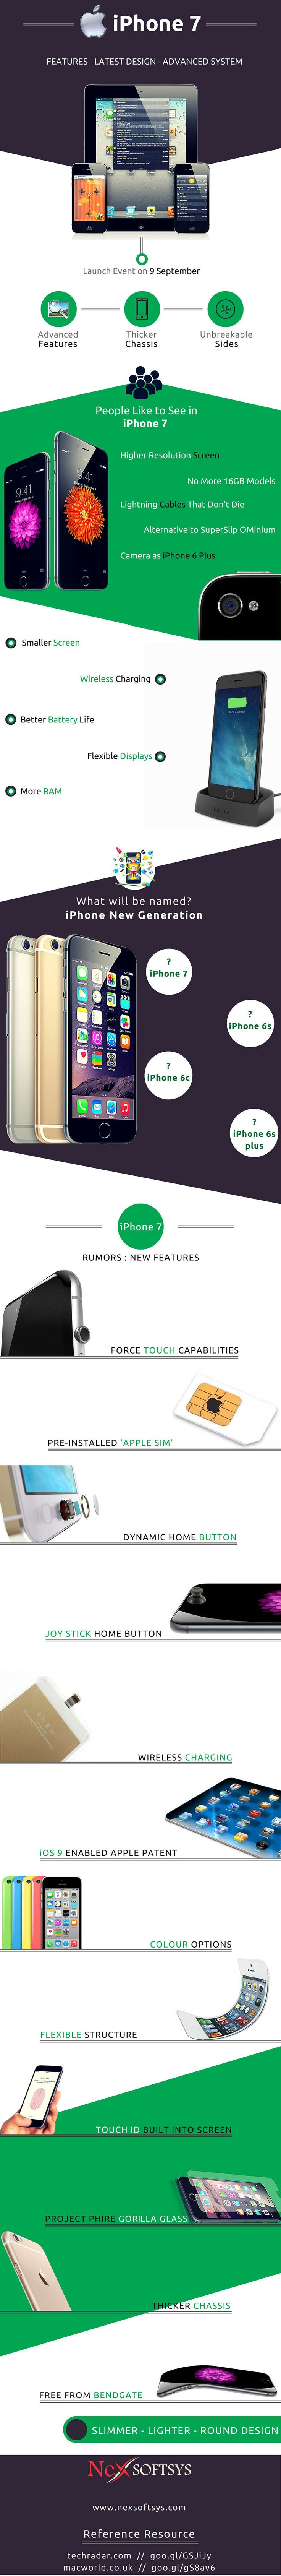 #Apple Planning to Launch #iPhone7 With Trailblazing Features and Thinnest Skin  Apple is planning to release iPhone 7 soon with trailblazing features and certain improvements. It will be thinnest smart apple phone available so far.